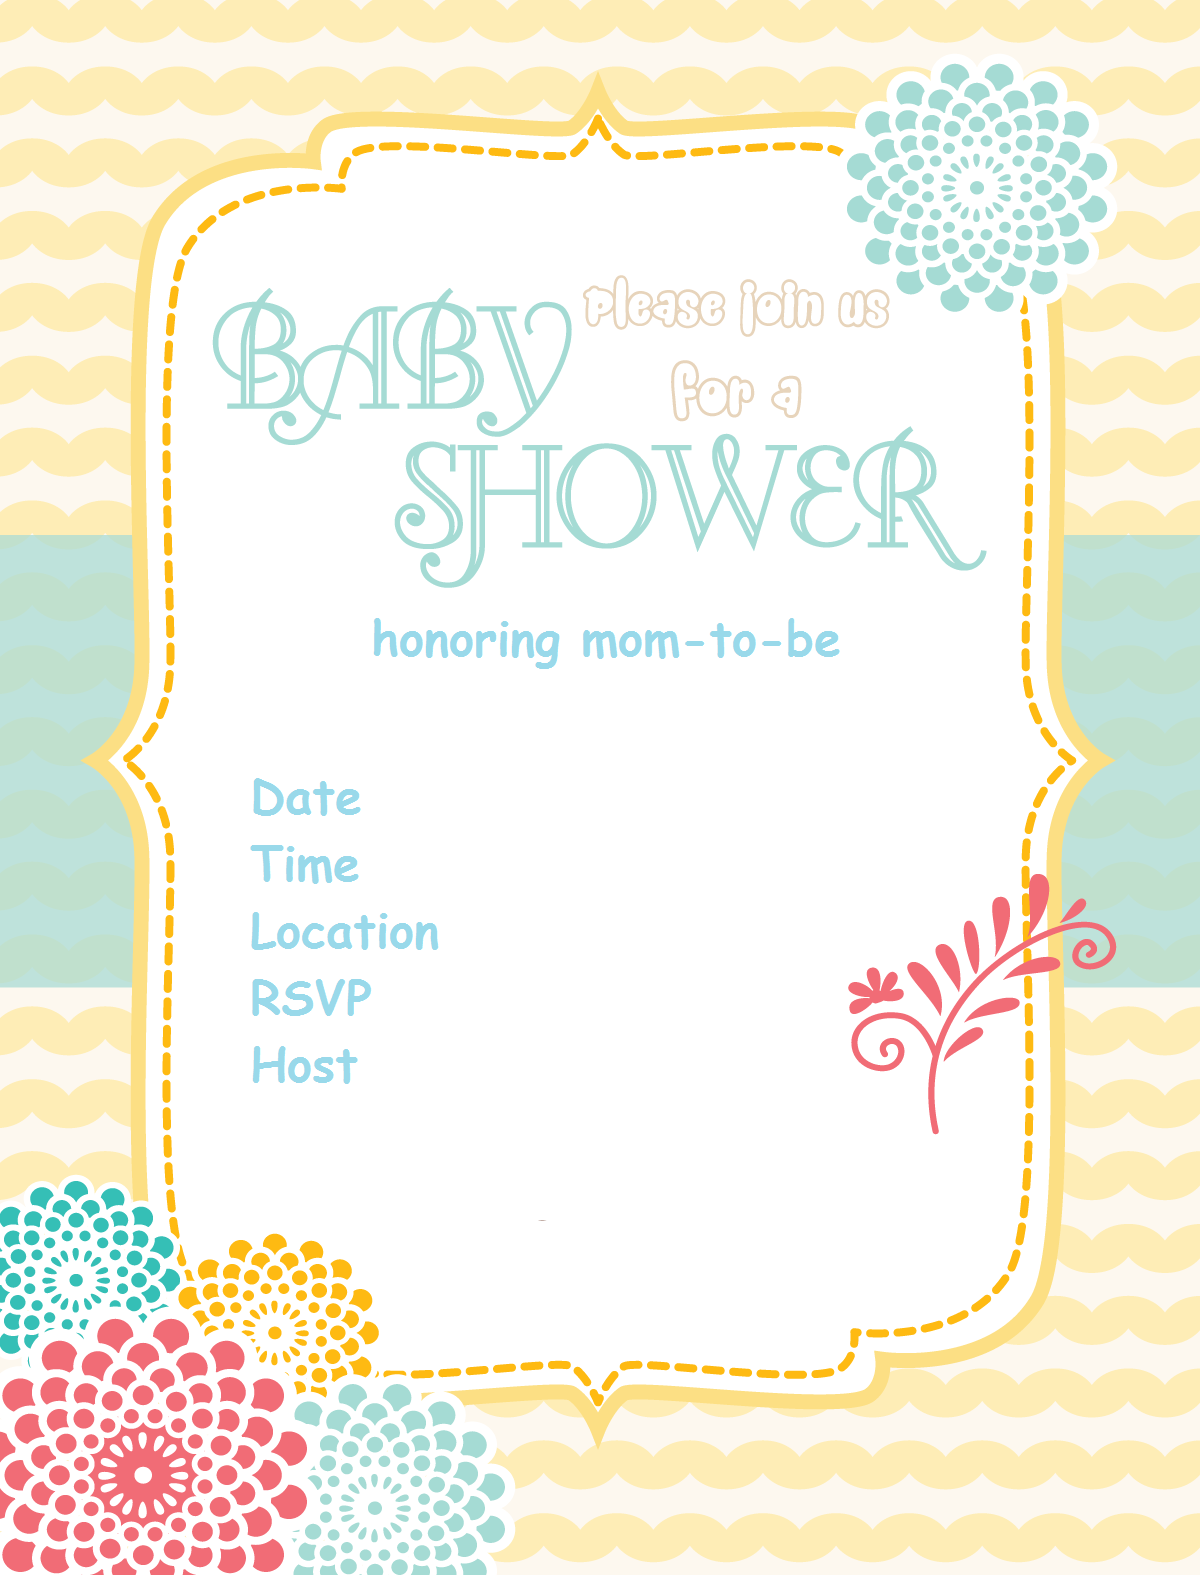 Fabulous Free-Baby-Shower-Invitation-Sunshine-Flower Via Www with Lovely Free Baby Shower Invitations